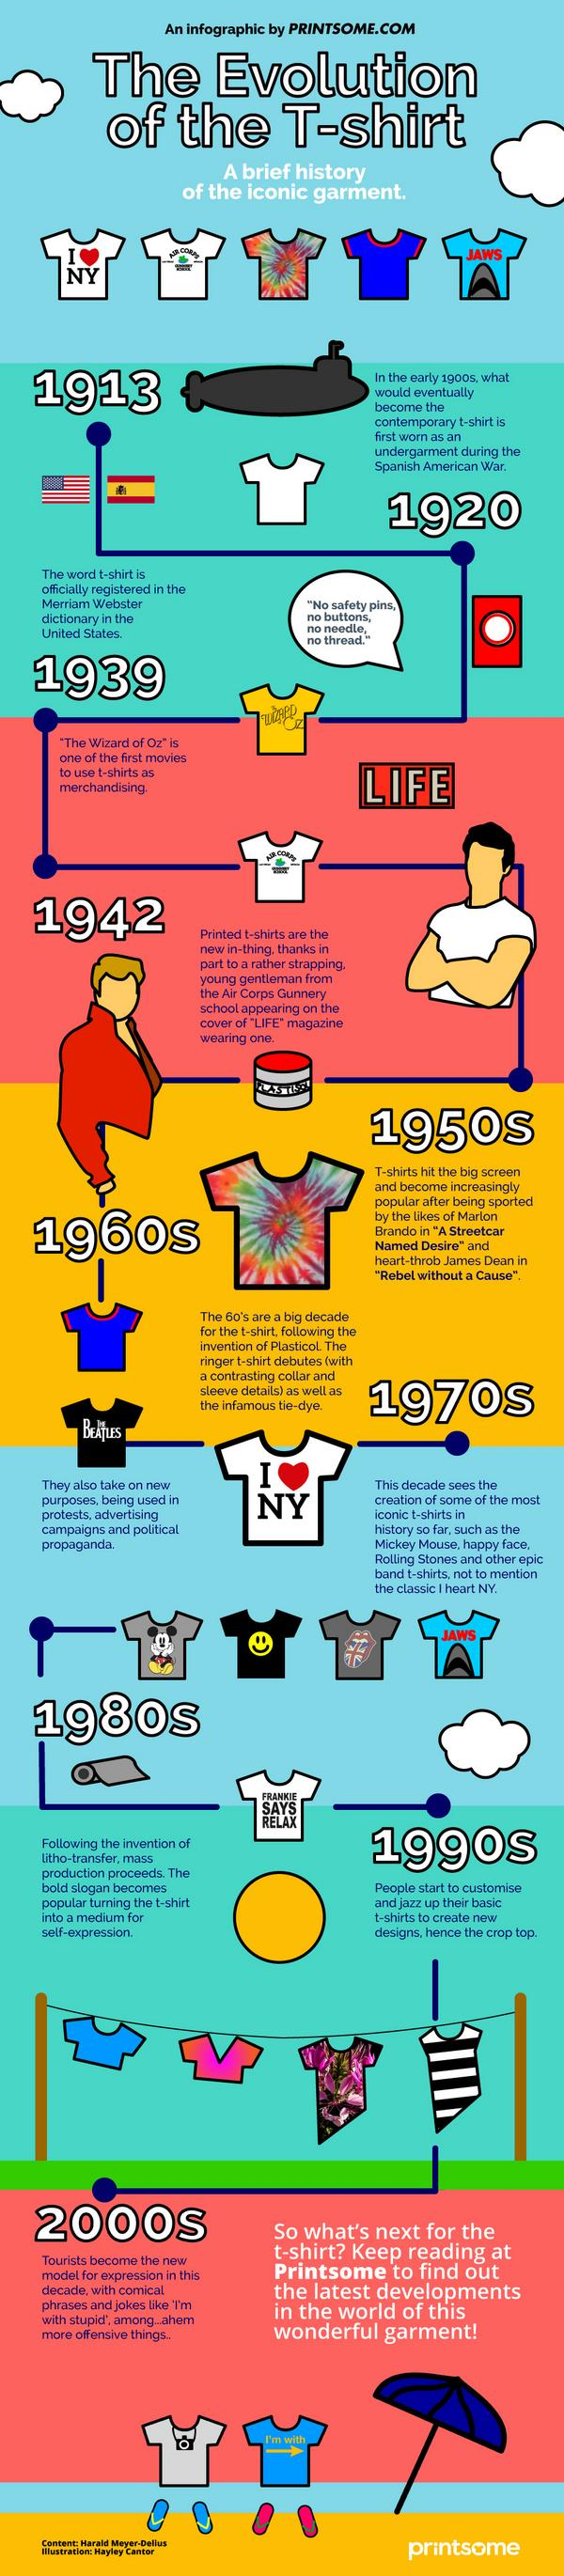 The Evolution of the T-Shirt